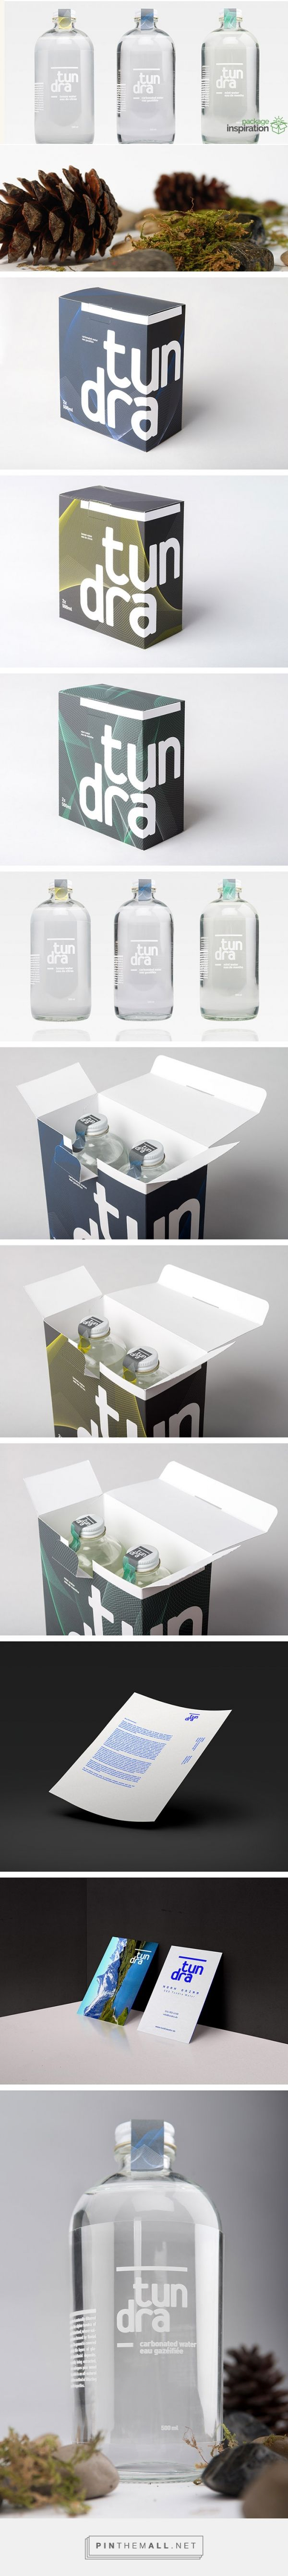 Tundra Water designed by Lauren Radulescu. #packaging #design #branding